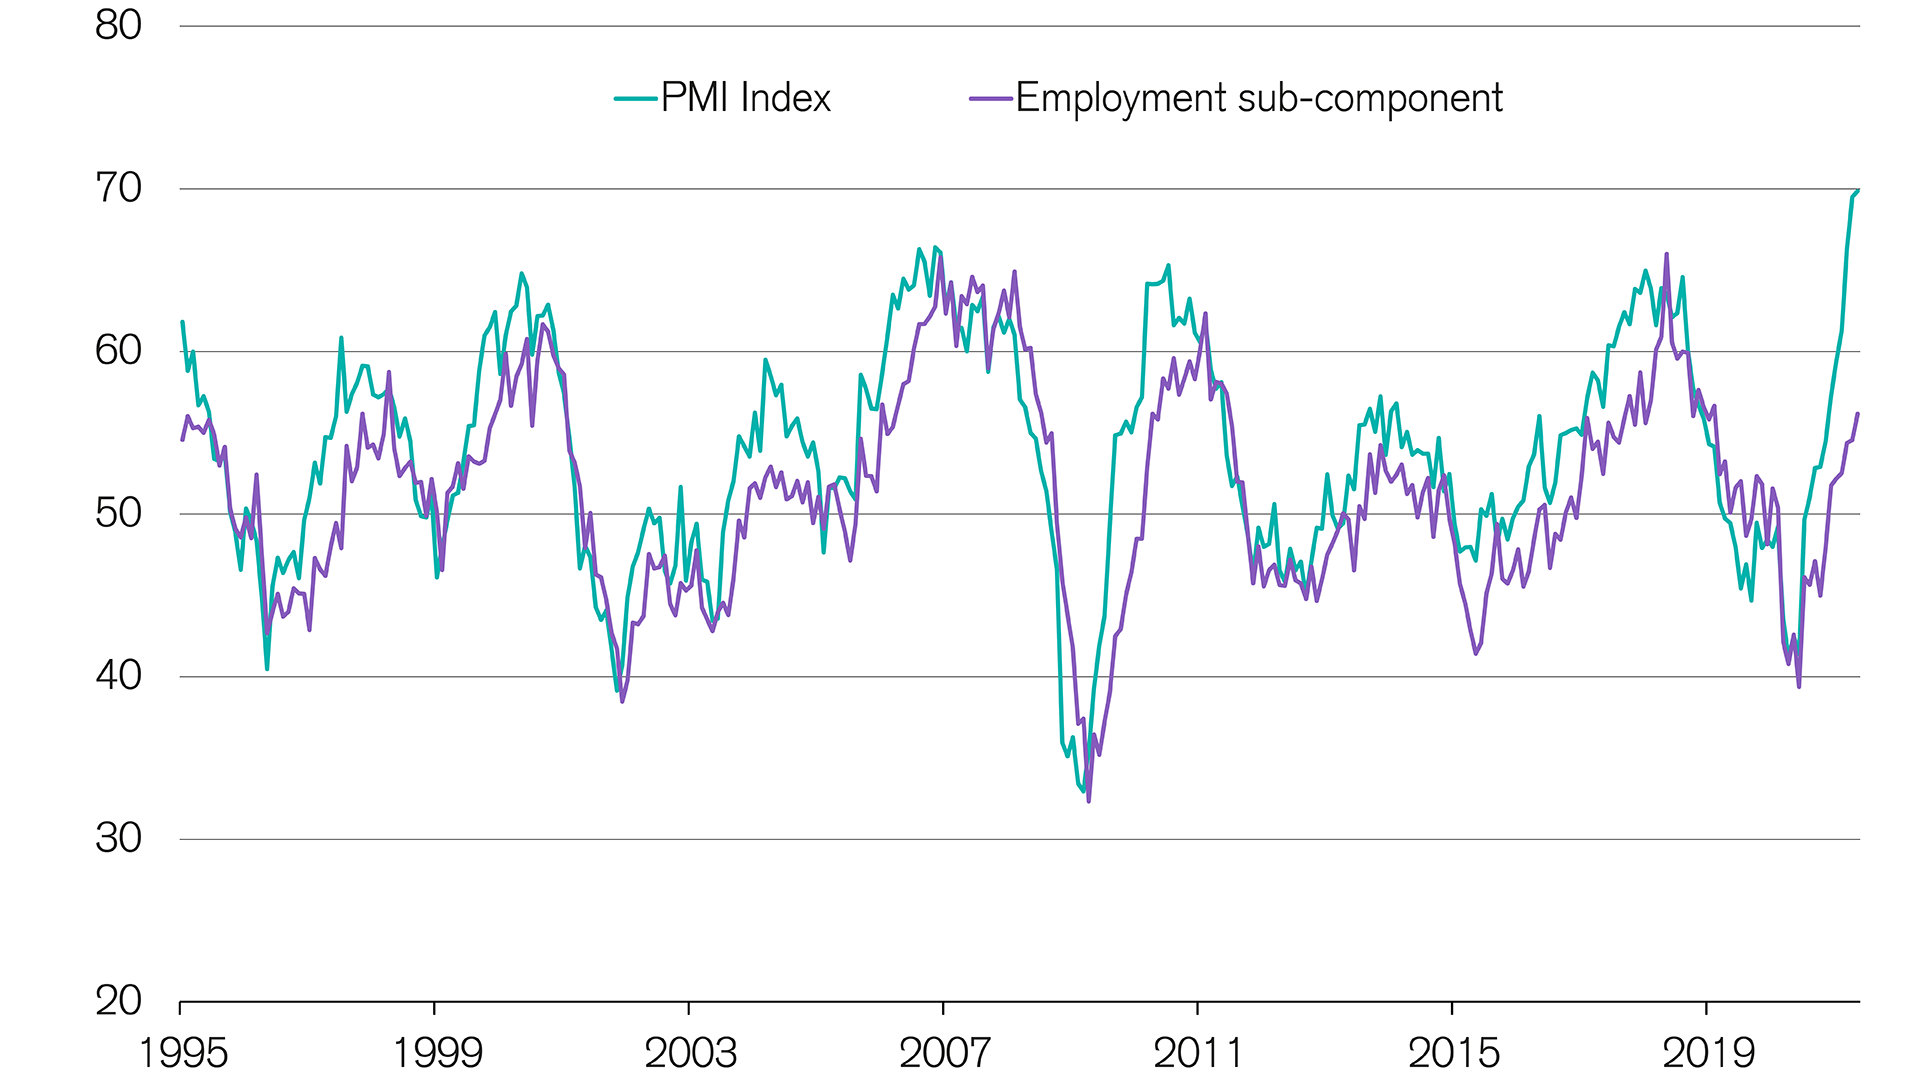 Swiss economy: Employment continues to lag behind the PMI